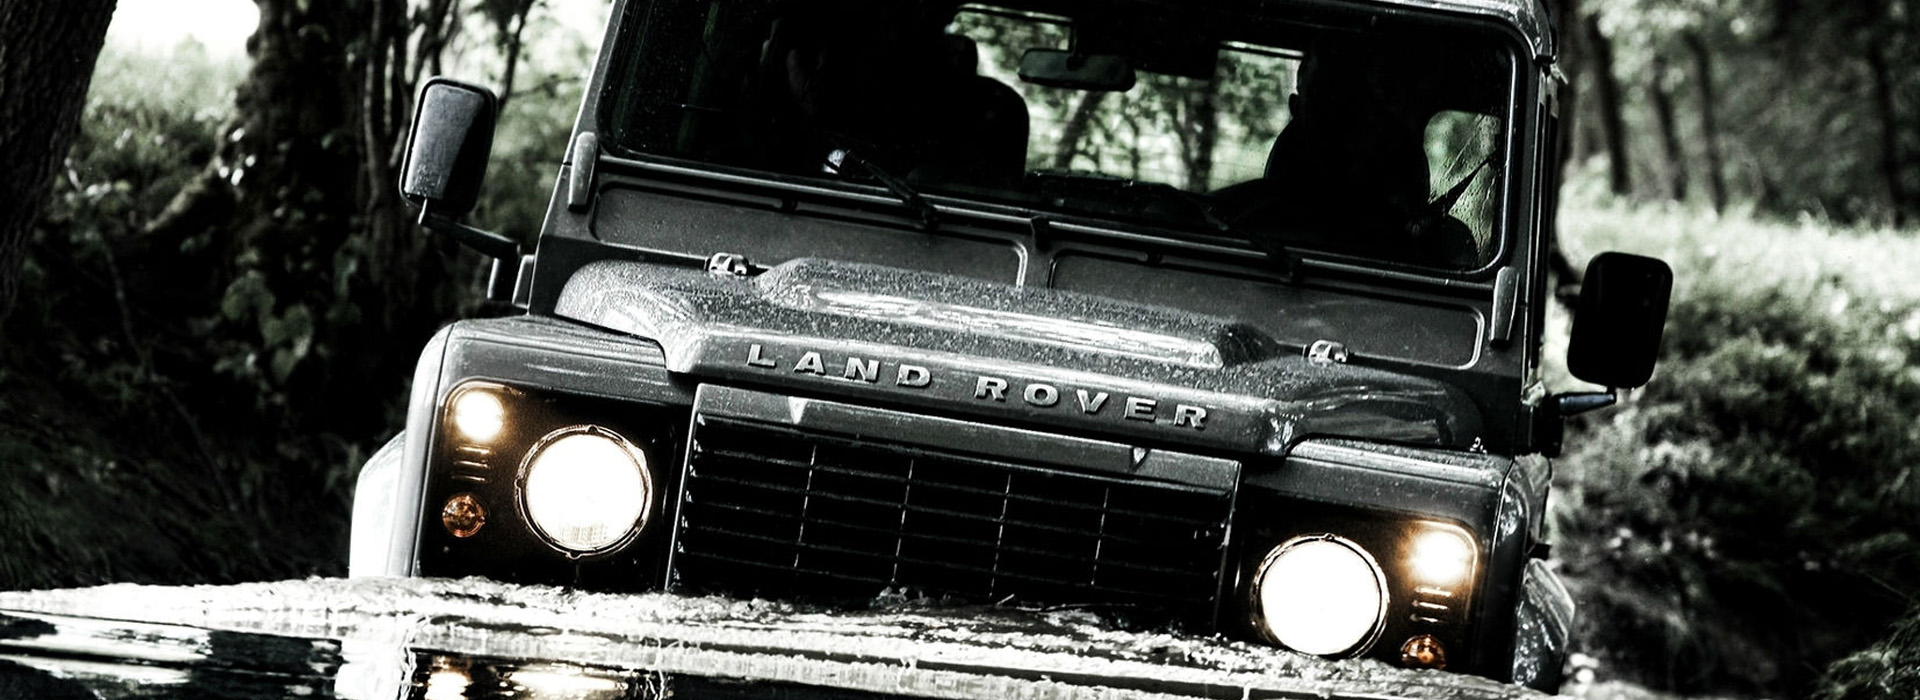 LAND ROVER OWNERS CLUB